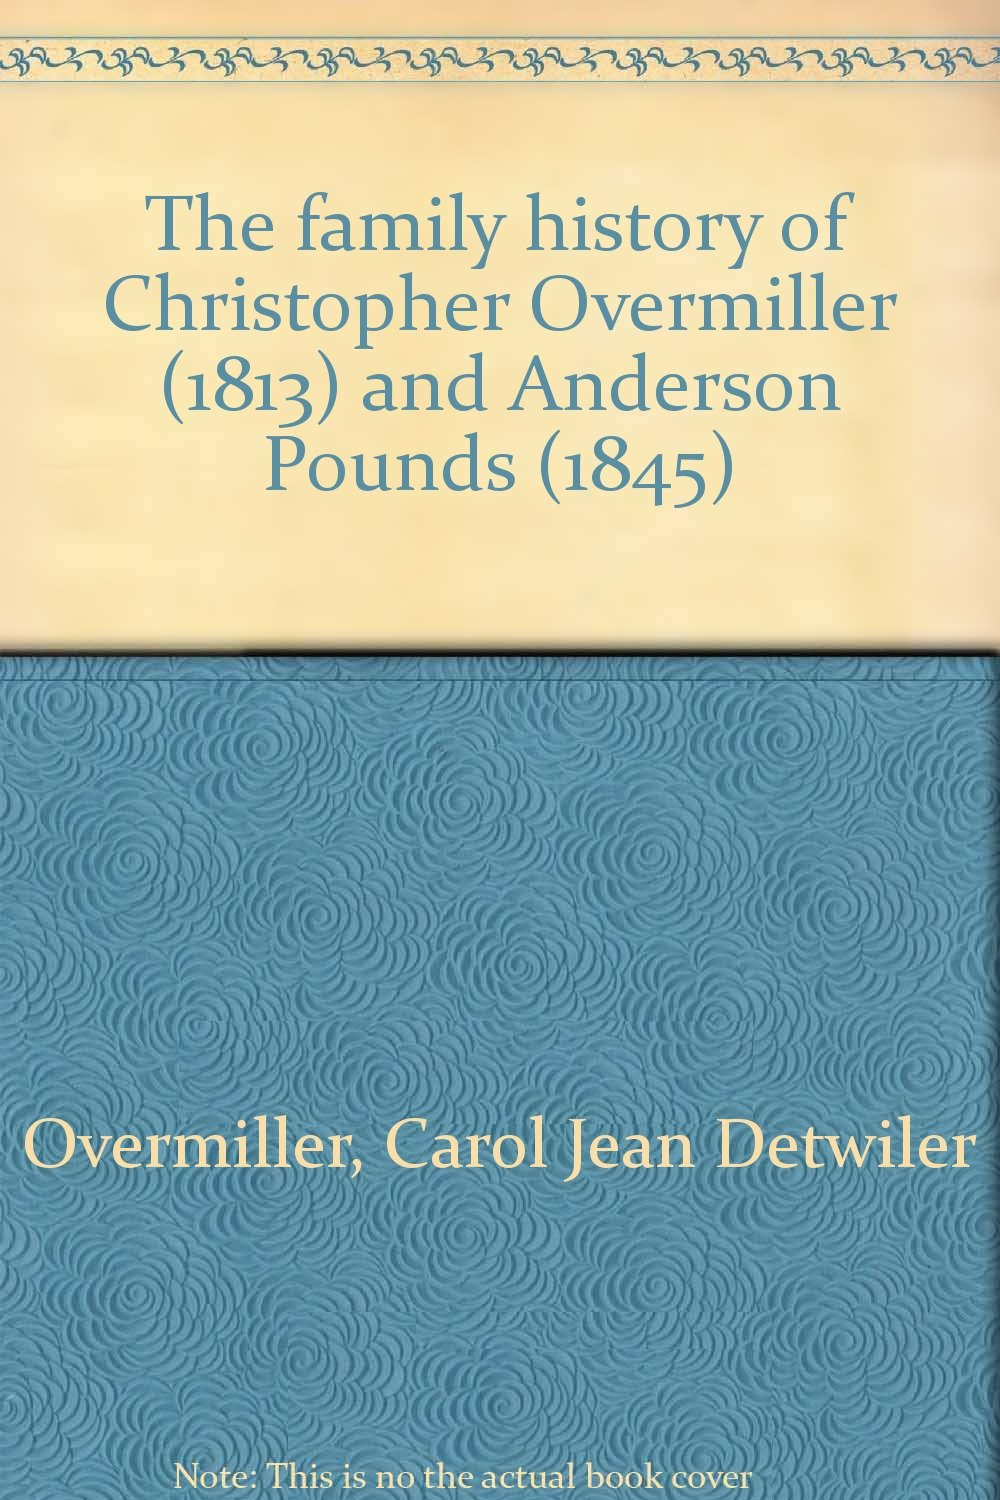 The family history of Christopher Overmiller (1813) and